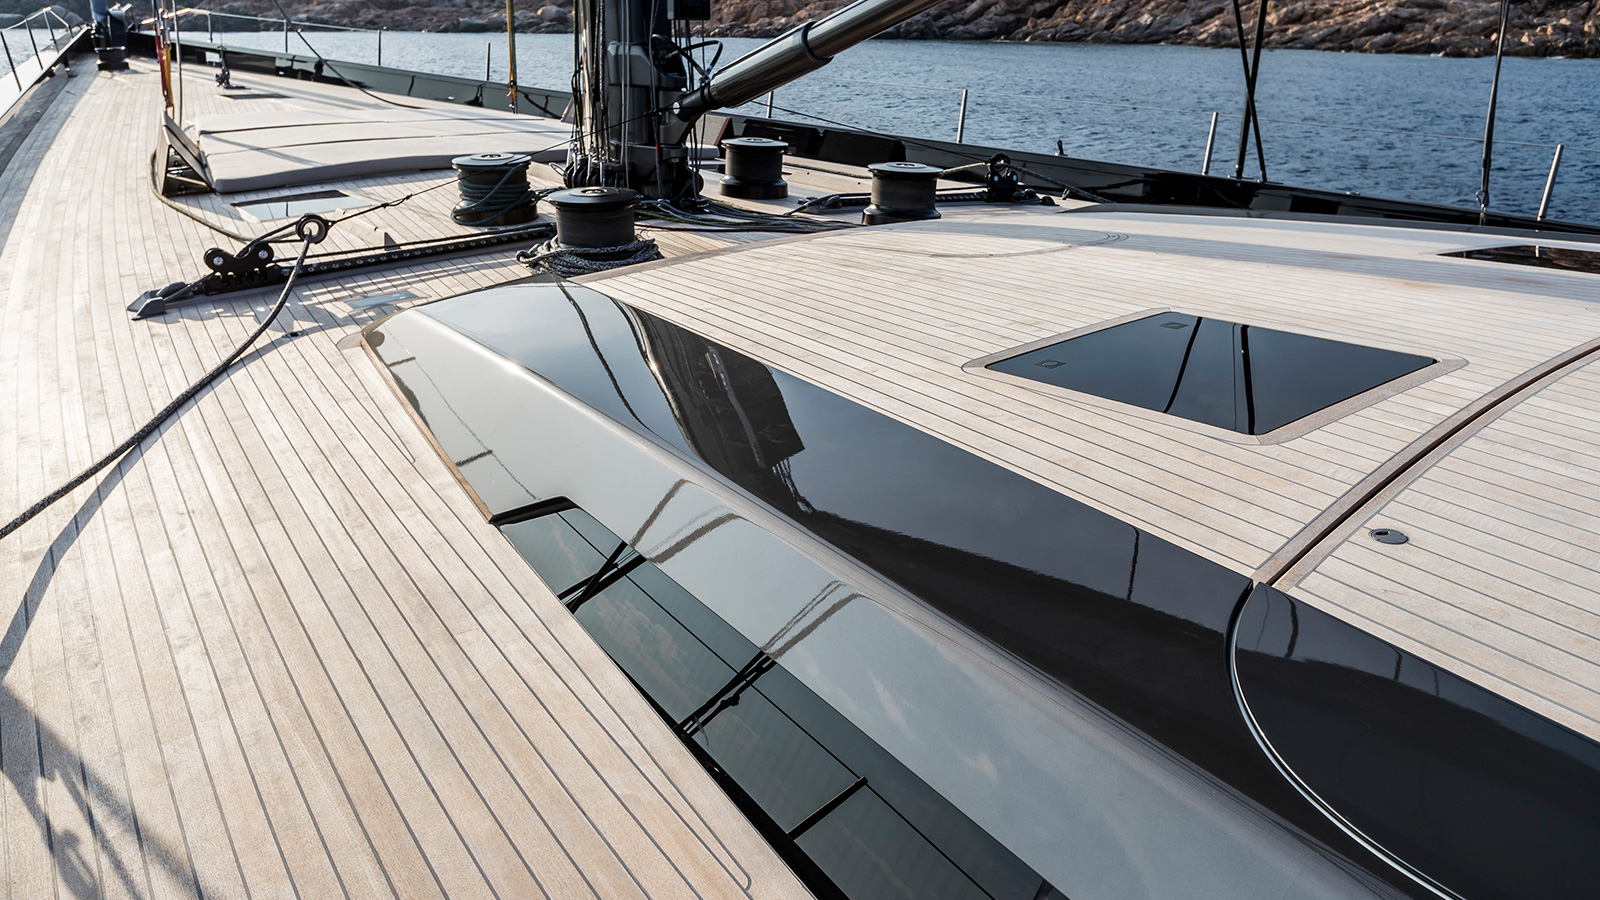 the-deck-of-Baltic-130-custom-sailing-super-yacht-my-song